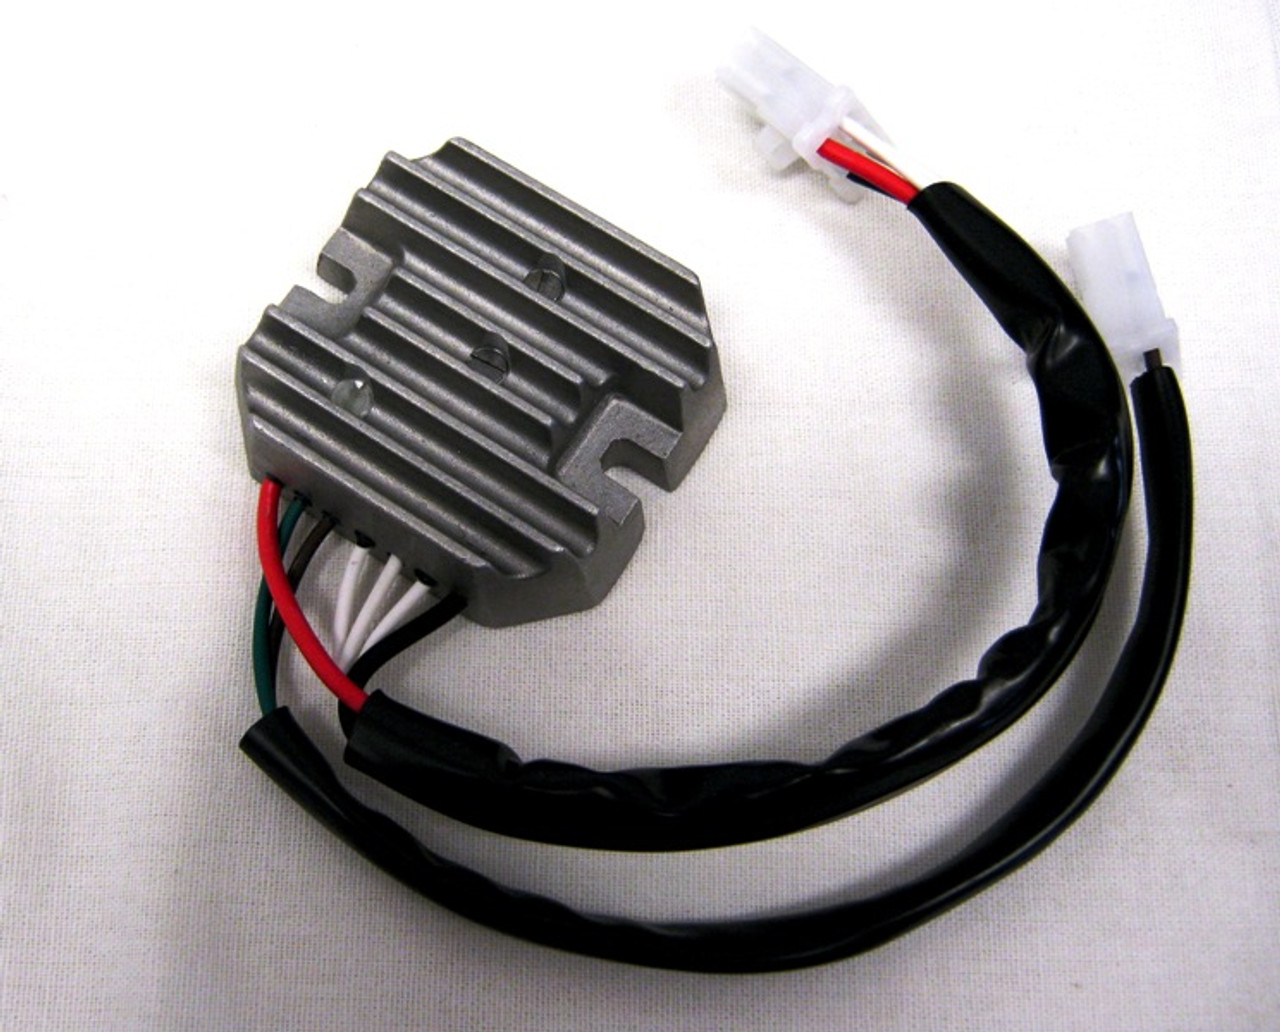 Yamaha RD 400 Voltage Regulator / Rectifier 10-401